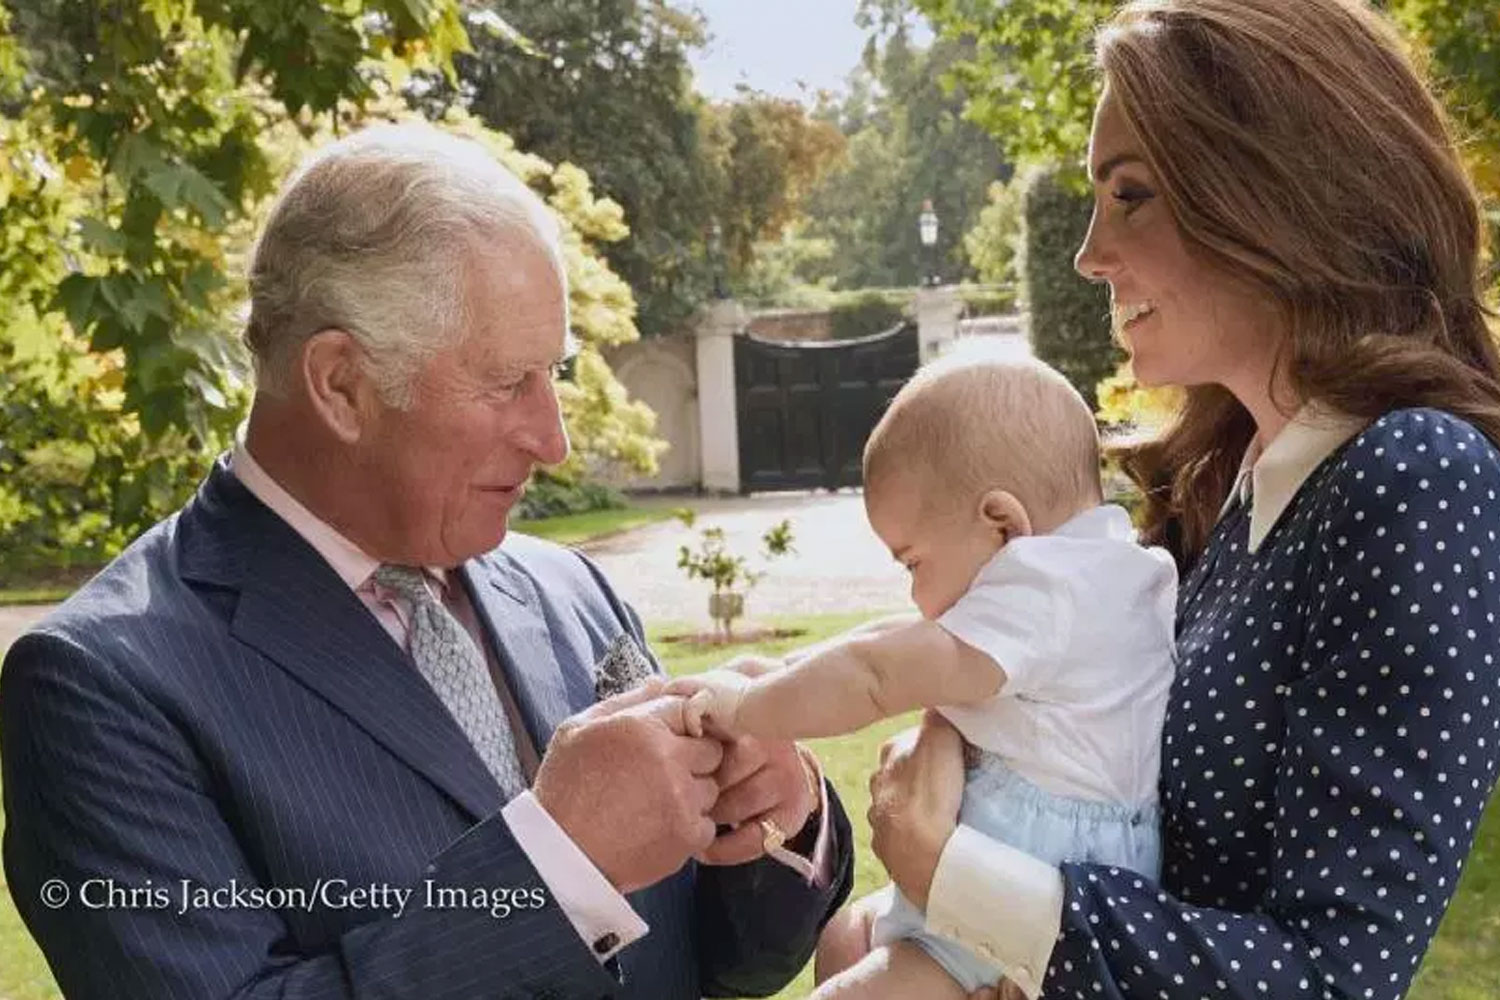 e308fdd3d3ef There is a new photo of Prince Charles with Prince Louis